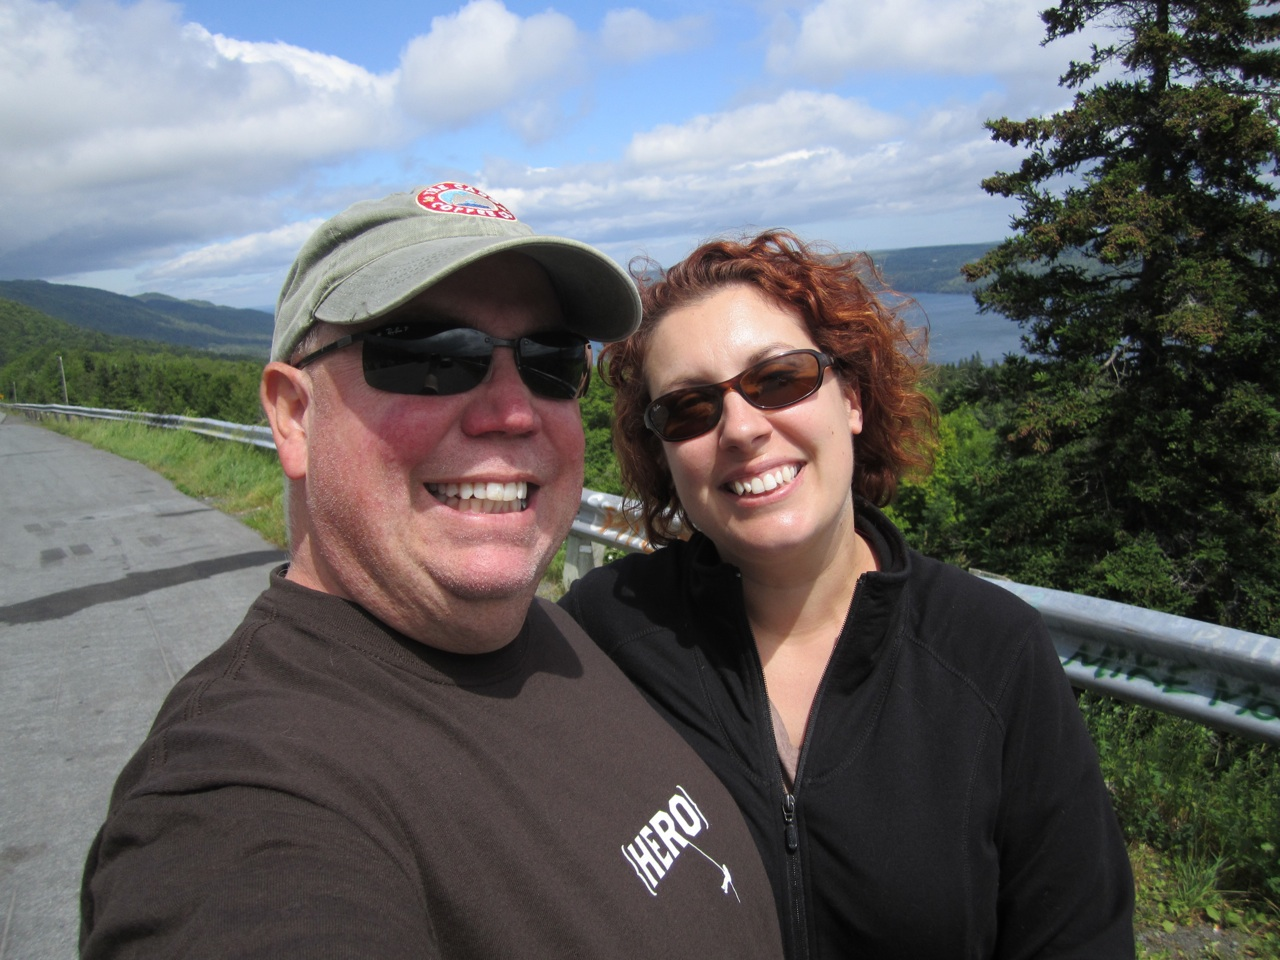 David And Brenda At The Overlook